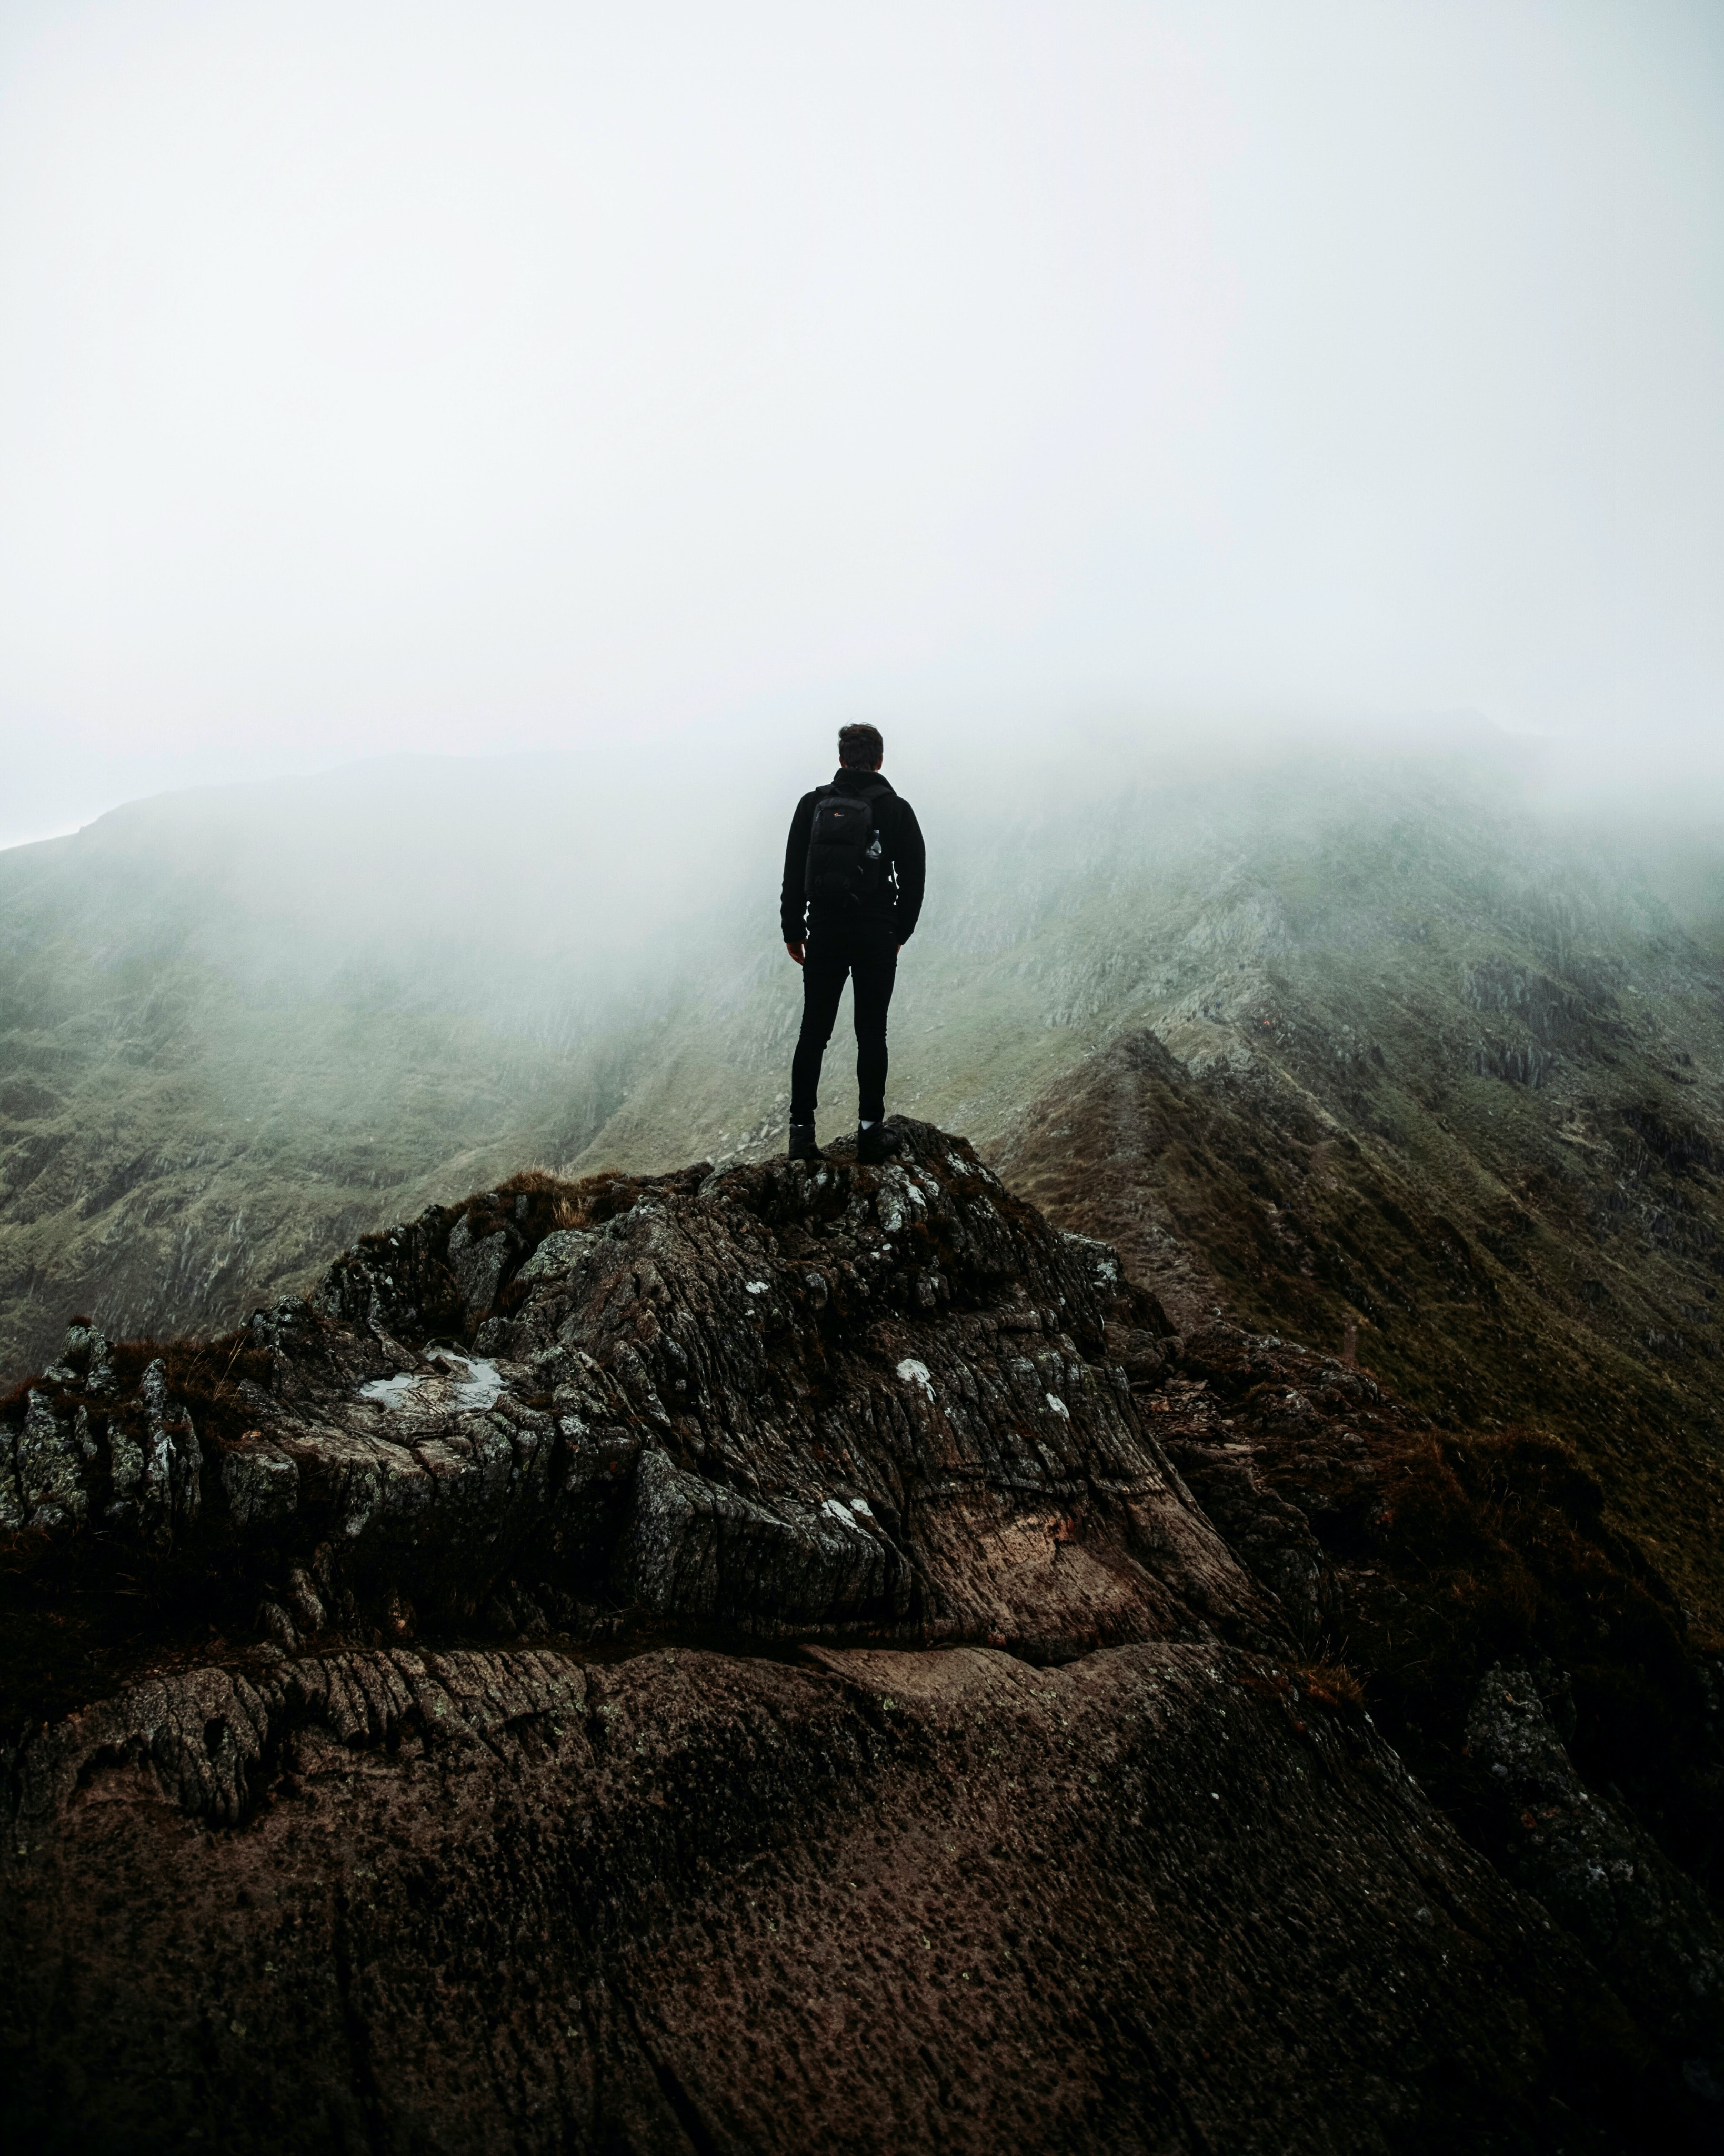 135989 free wallpaper 2160x3840 for phone, download images Rocks, Miscellanea, Miscellaneous, Fog, Human, Person, Loneliness, Alone, Lonely 2160x3840 for mobile